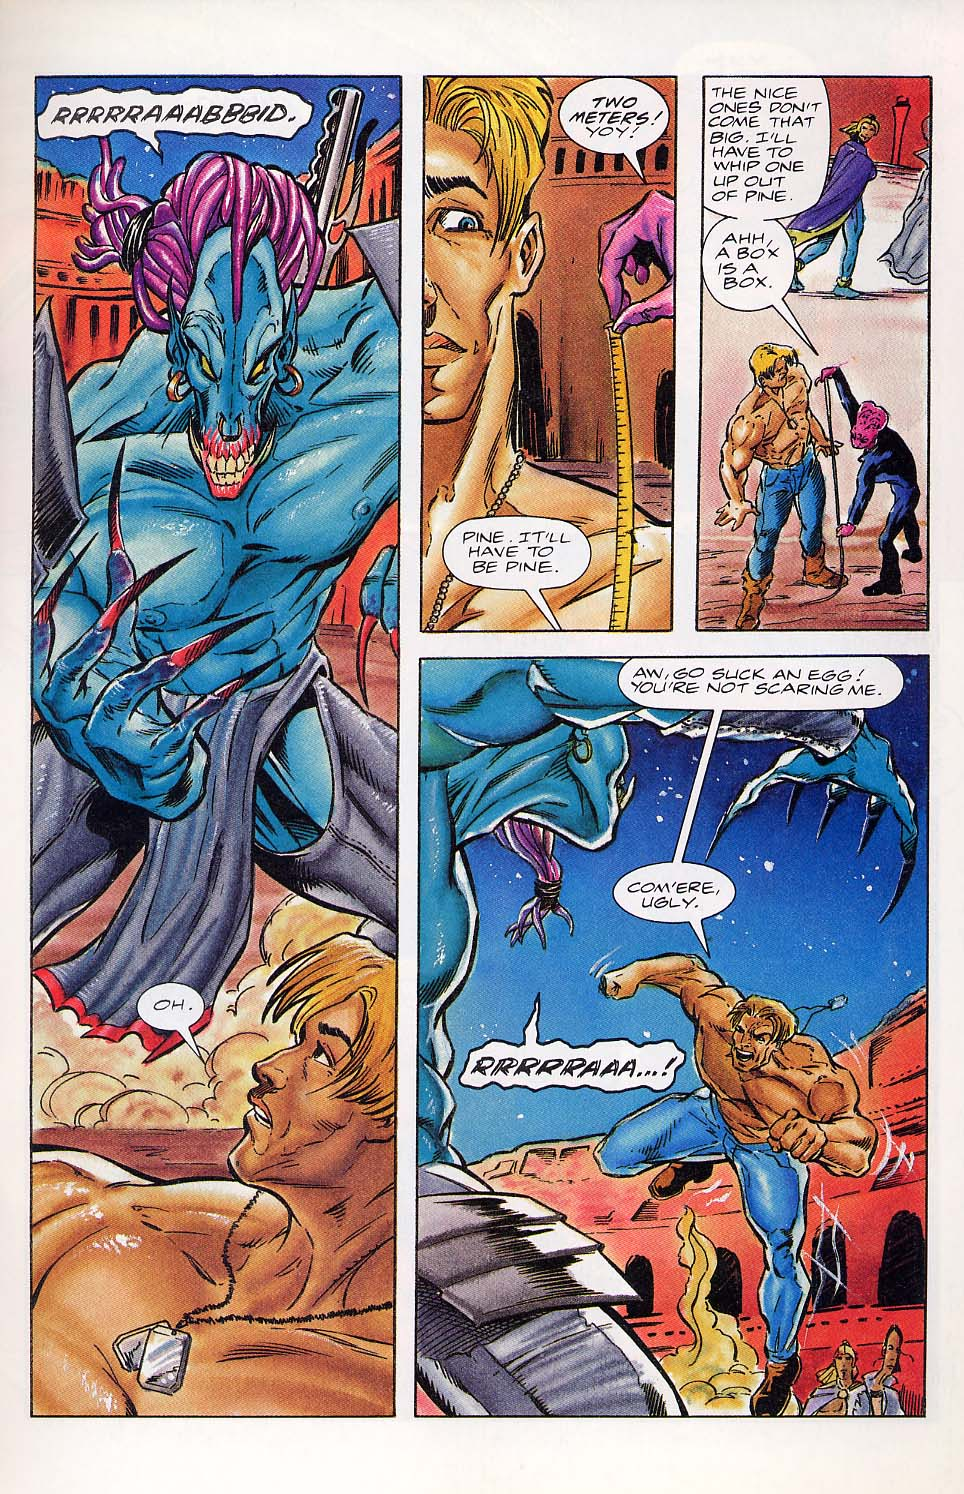 Read online Charlemagne comic -  Issue #5 - 10